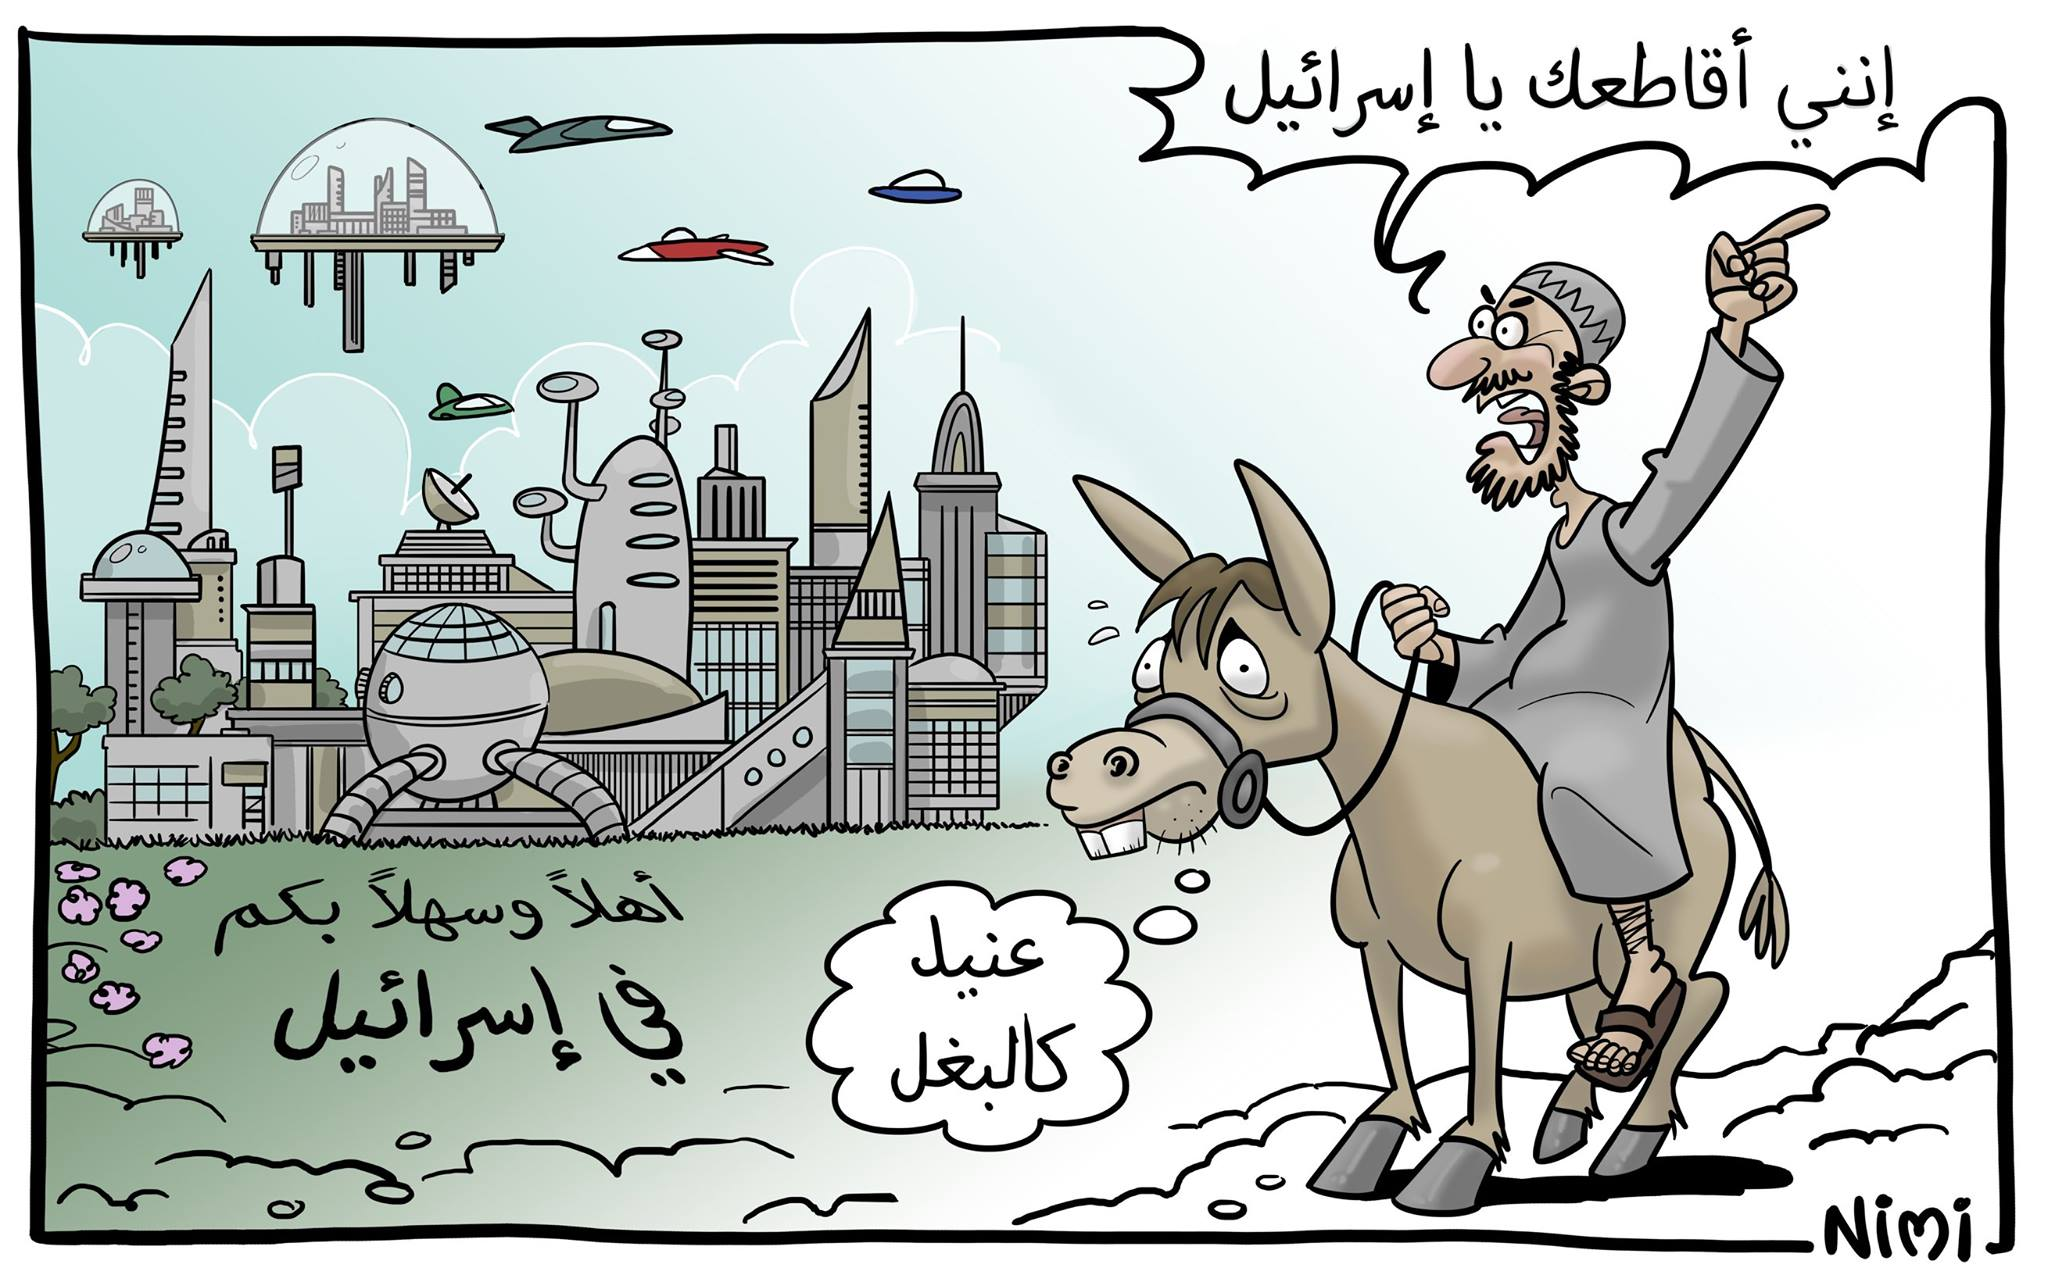 foreign ministry cartoon depicts arab world as a man on a mule   the